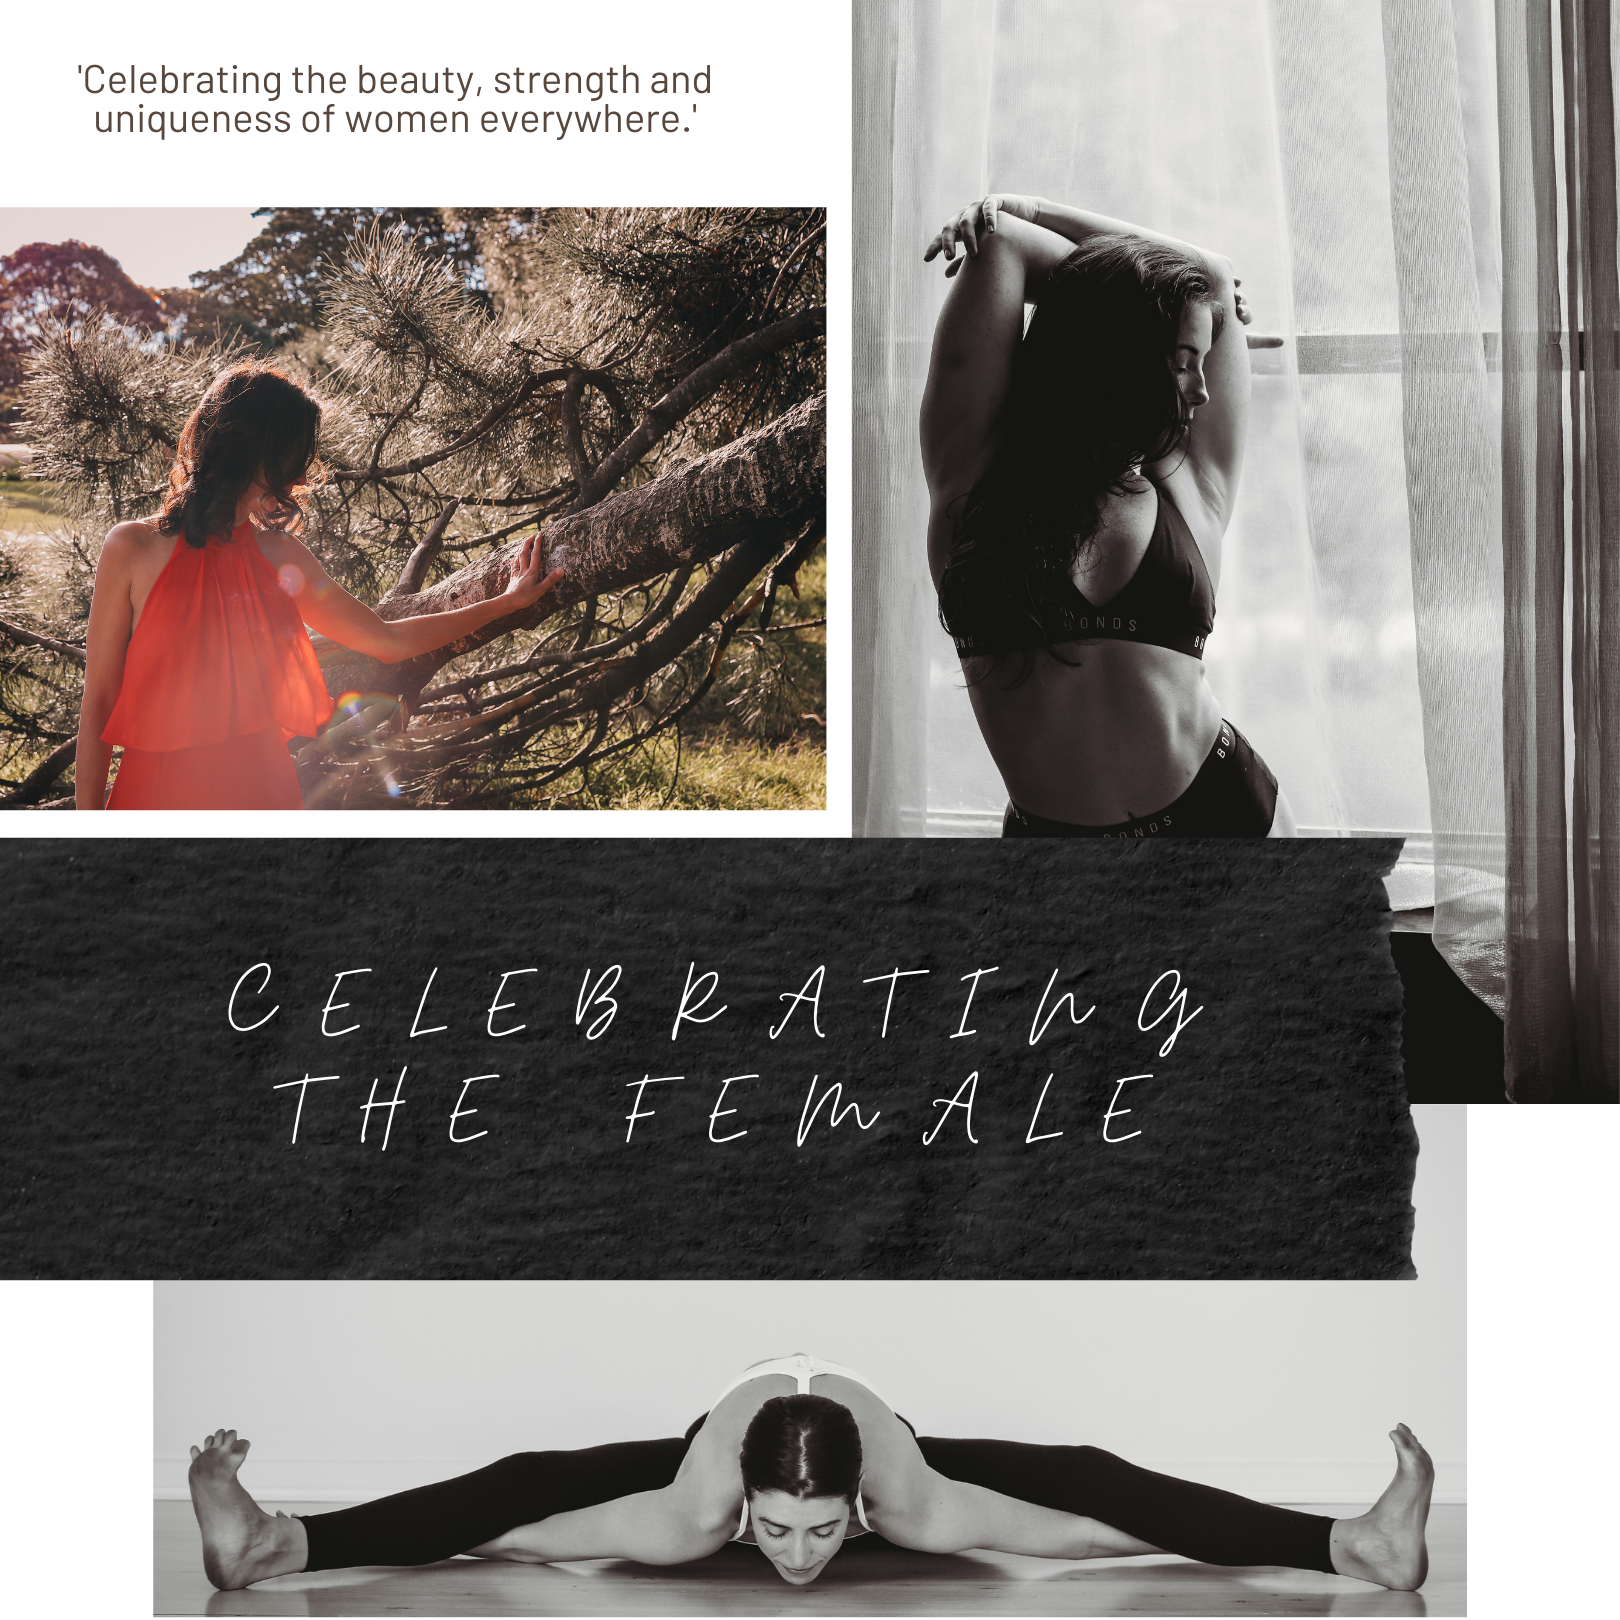 """<img src=""""celebrating the female photo.jpg"""" alt=""""Celebrating the female title page with yoga pose pole dancer posed by window and woman in red dress in the woods"""">"""